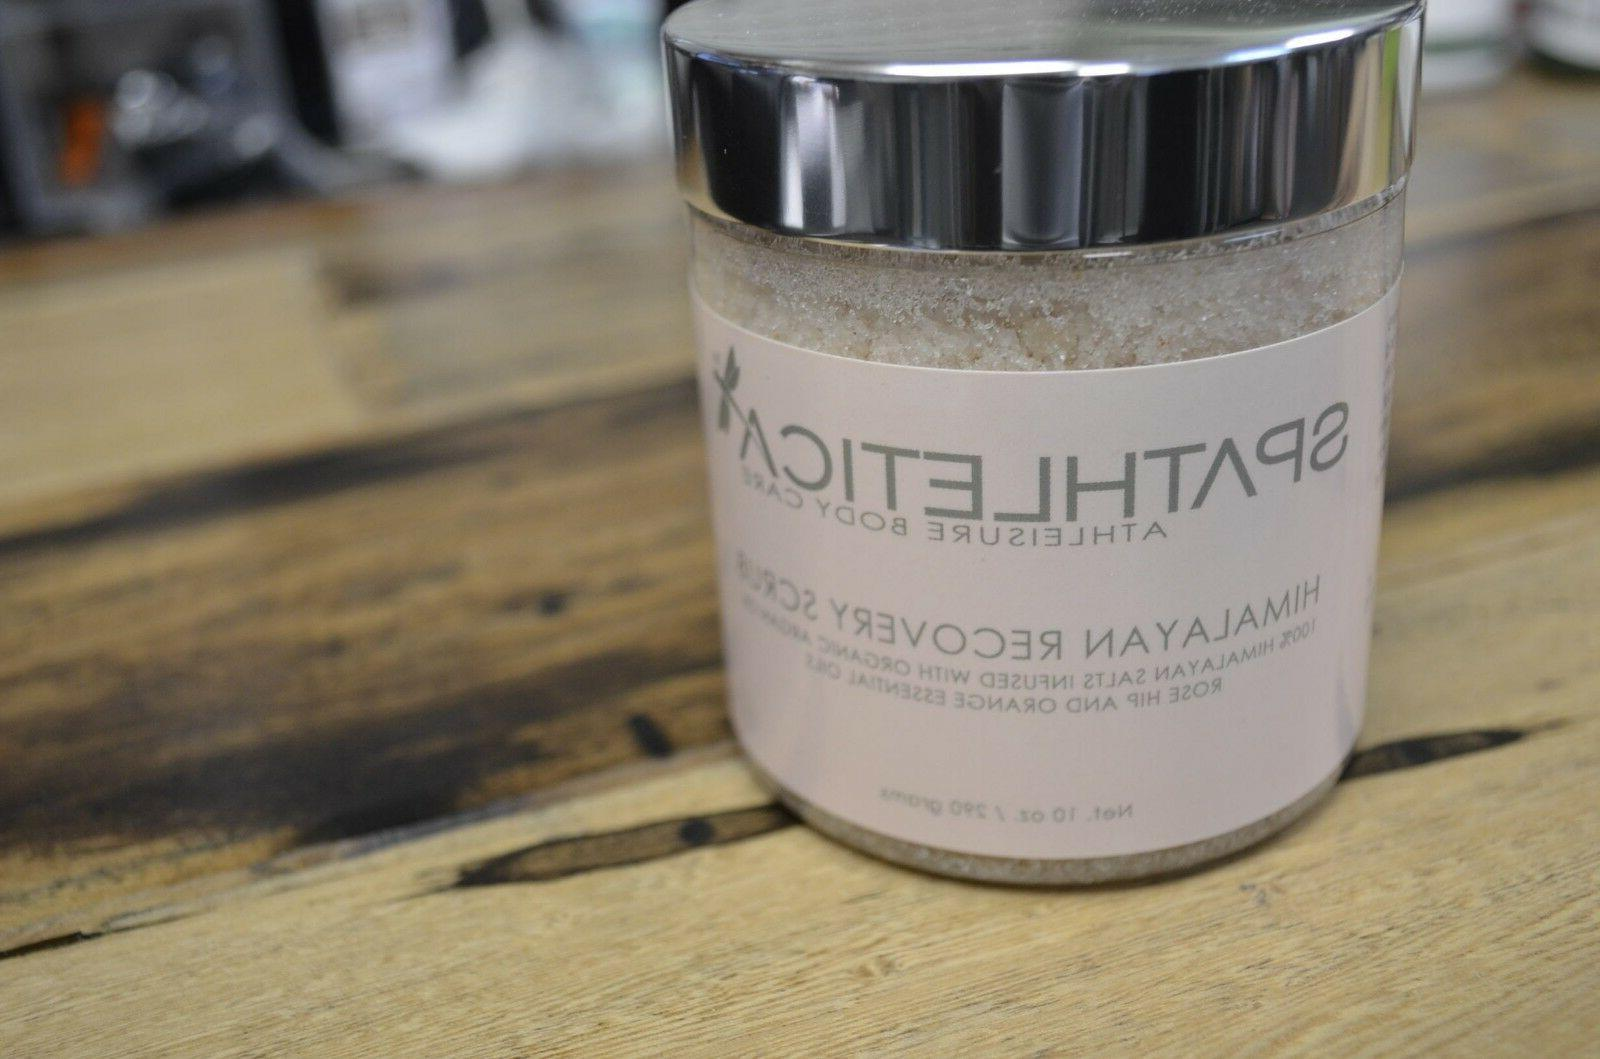 Spathletica Himalayan Scrub with rose Hip, Argan,Orange Oil